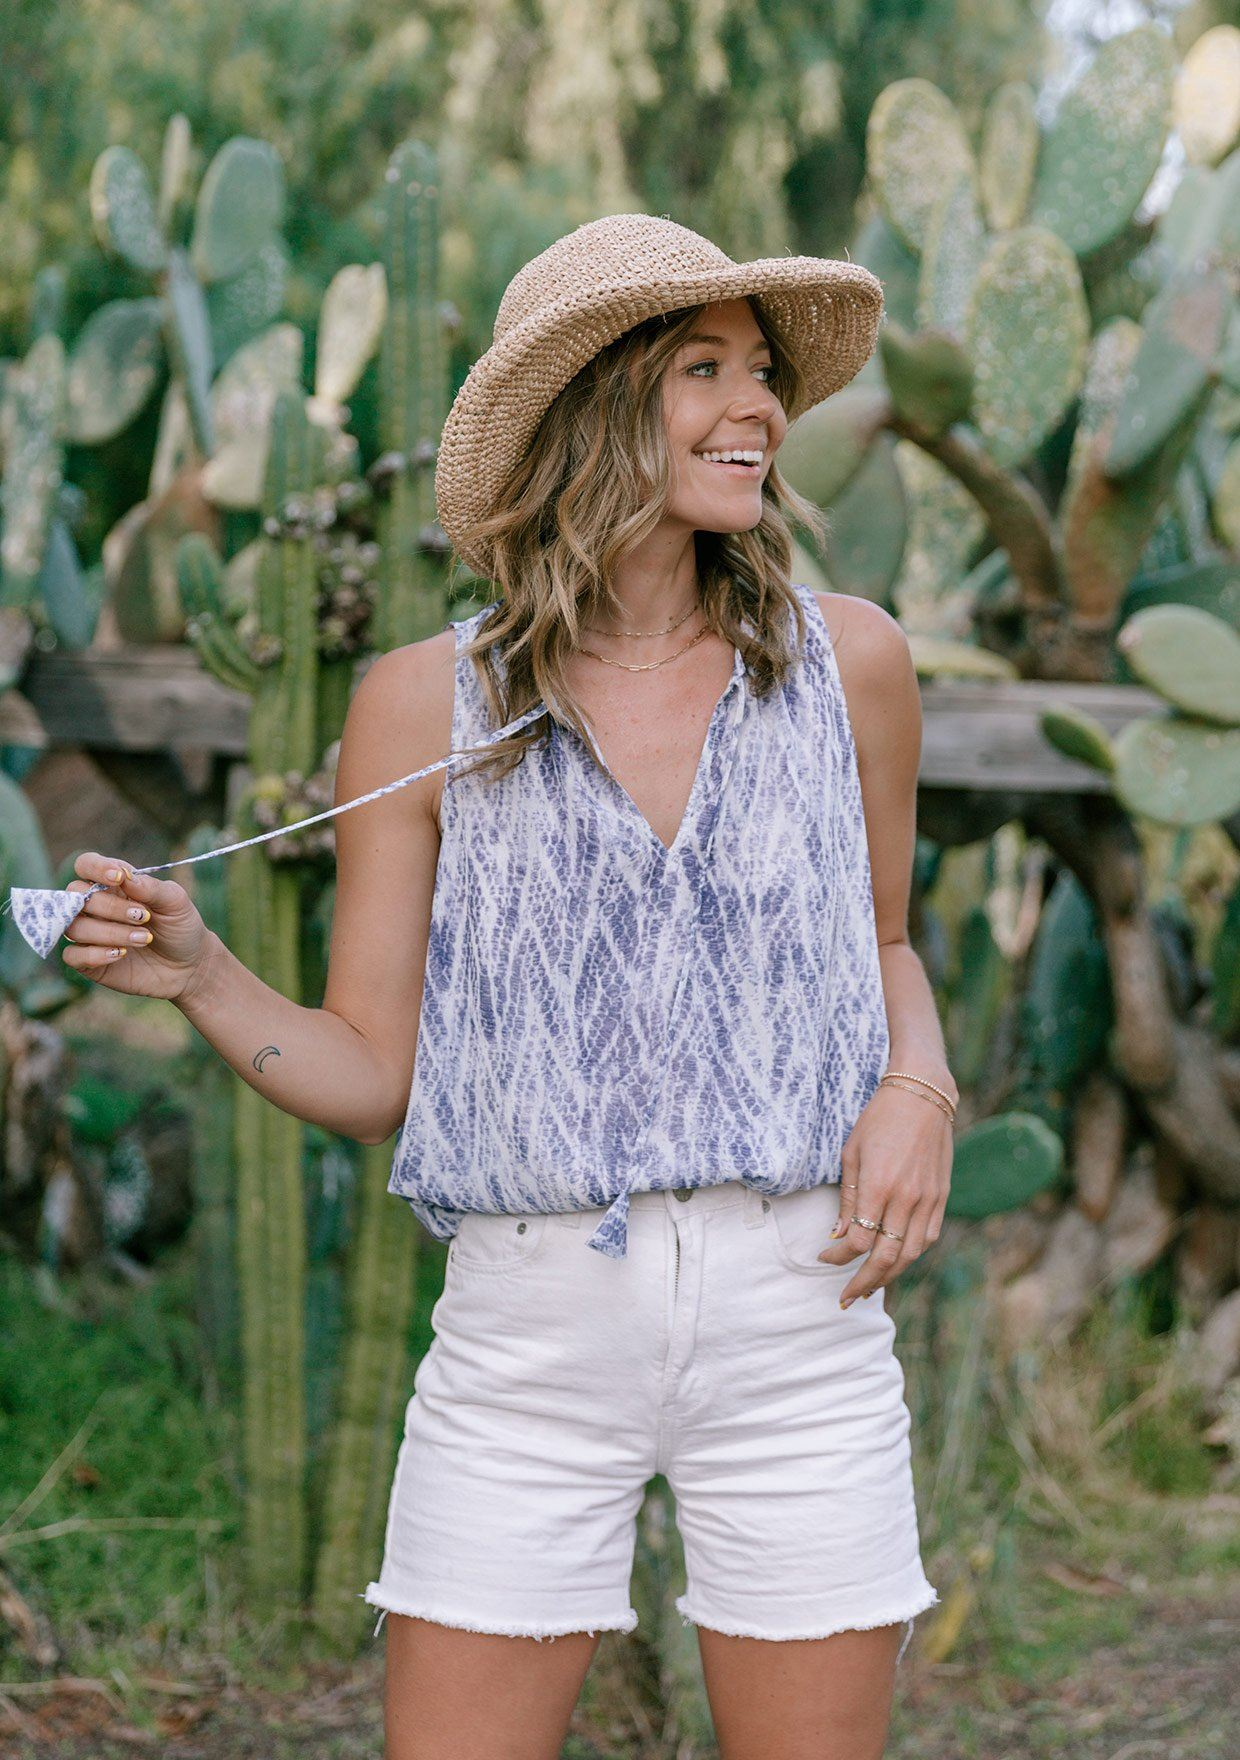 [Color: Iris] A woman standing in front of a field of cacti wearing a classic and flattering sleeveless blouse in iris blue abstract chevron pattern. Features a split neckline, a shirttail hemline, and a side button up detail.